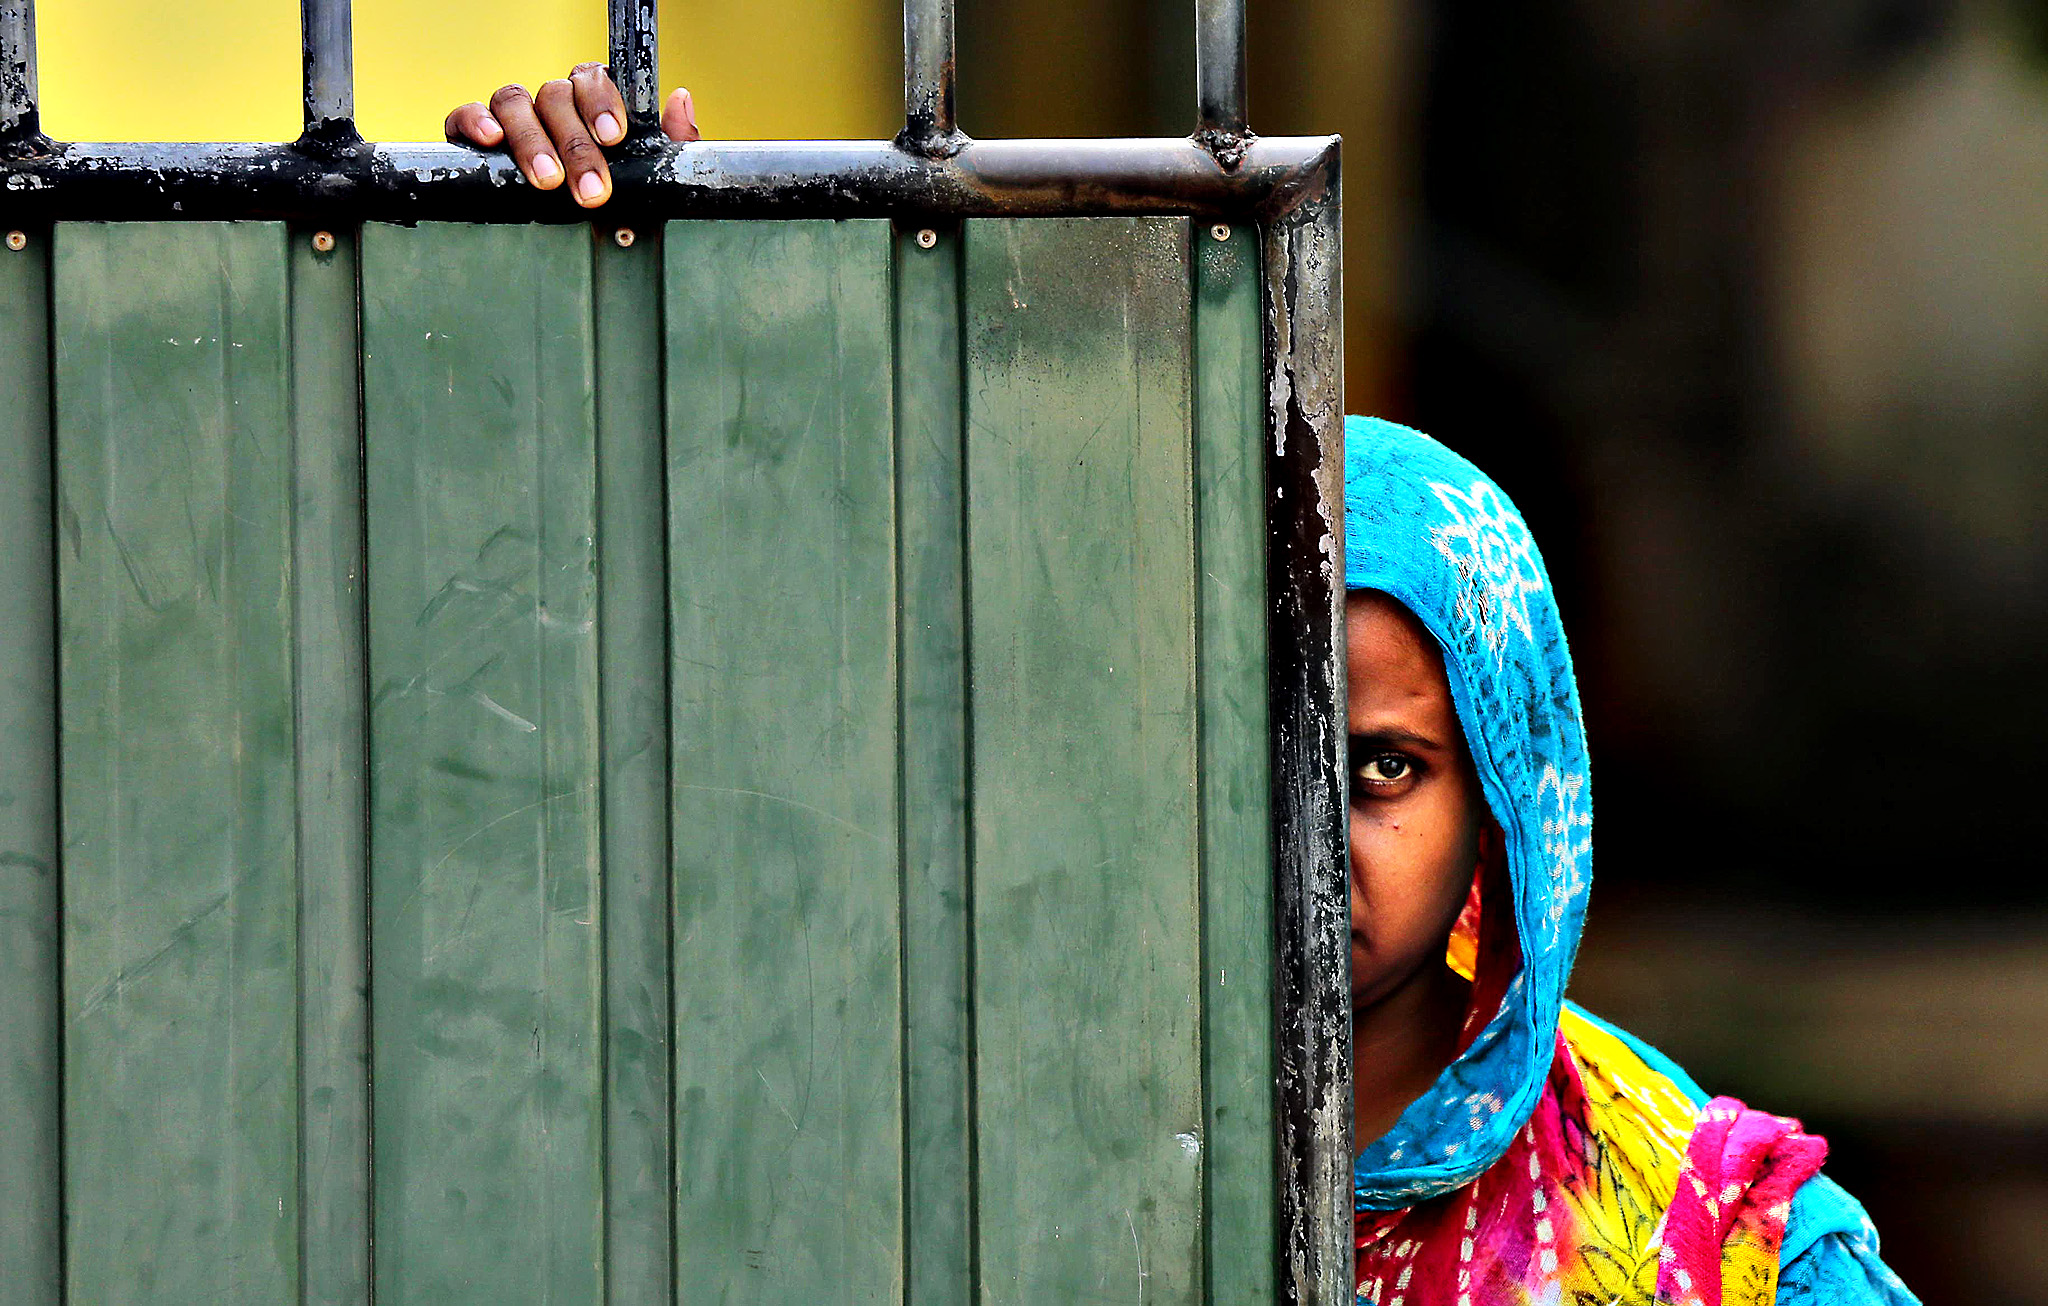 A Sri Lankan Muslim woman looks out on the street, in Aluthgama, town, 50 kilometers (31.25 miles) south of Colombo, Sri Lanka, Monday, June 16, 2014. At least three Muslims were killed after a right-wing Buddhist group with alleged state backing clashed with Muslims in southwestern Sri Lanka, a government minister said Monday. Dozens of shops were burned, homes looted and some mosques attacked in the violence Sunday night in the town of Aluthgama, local residents said.